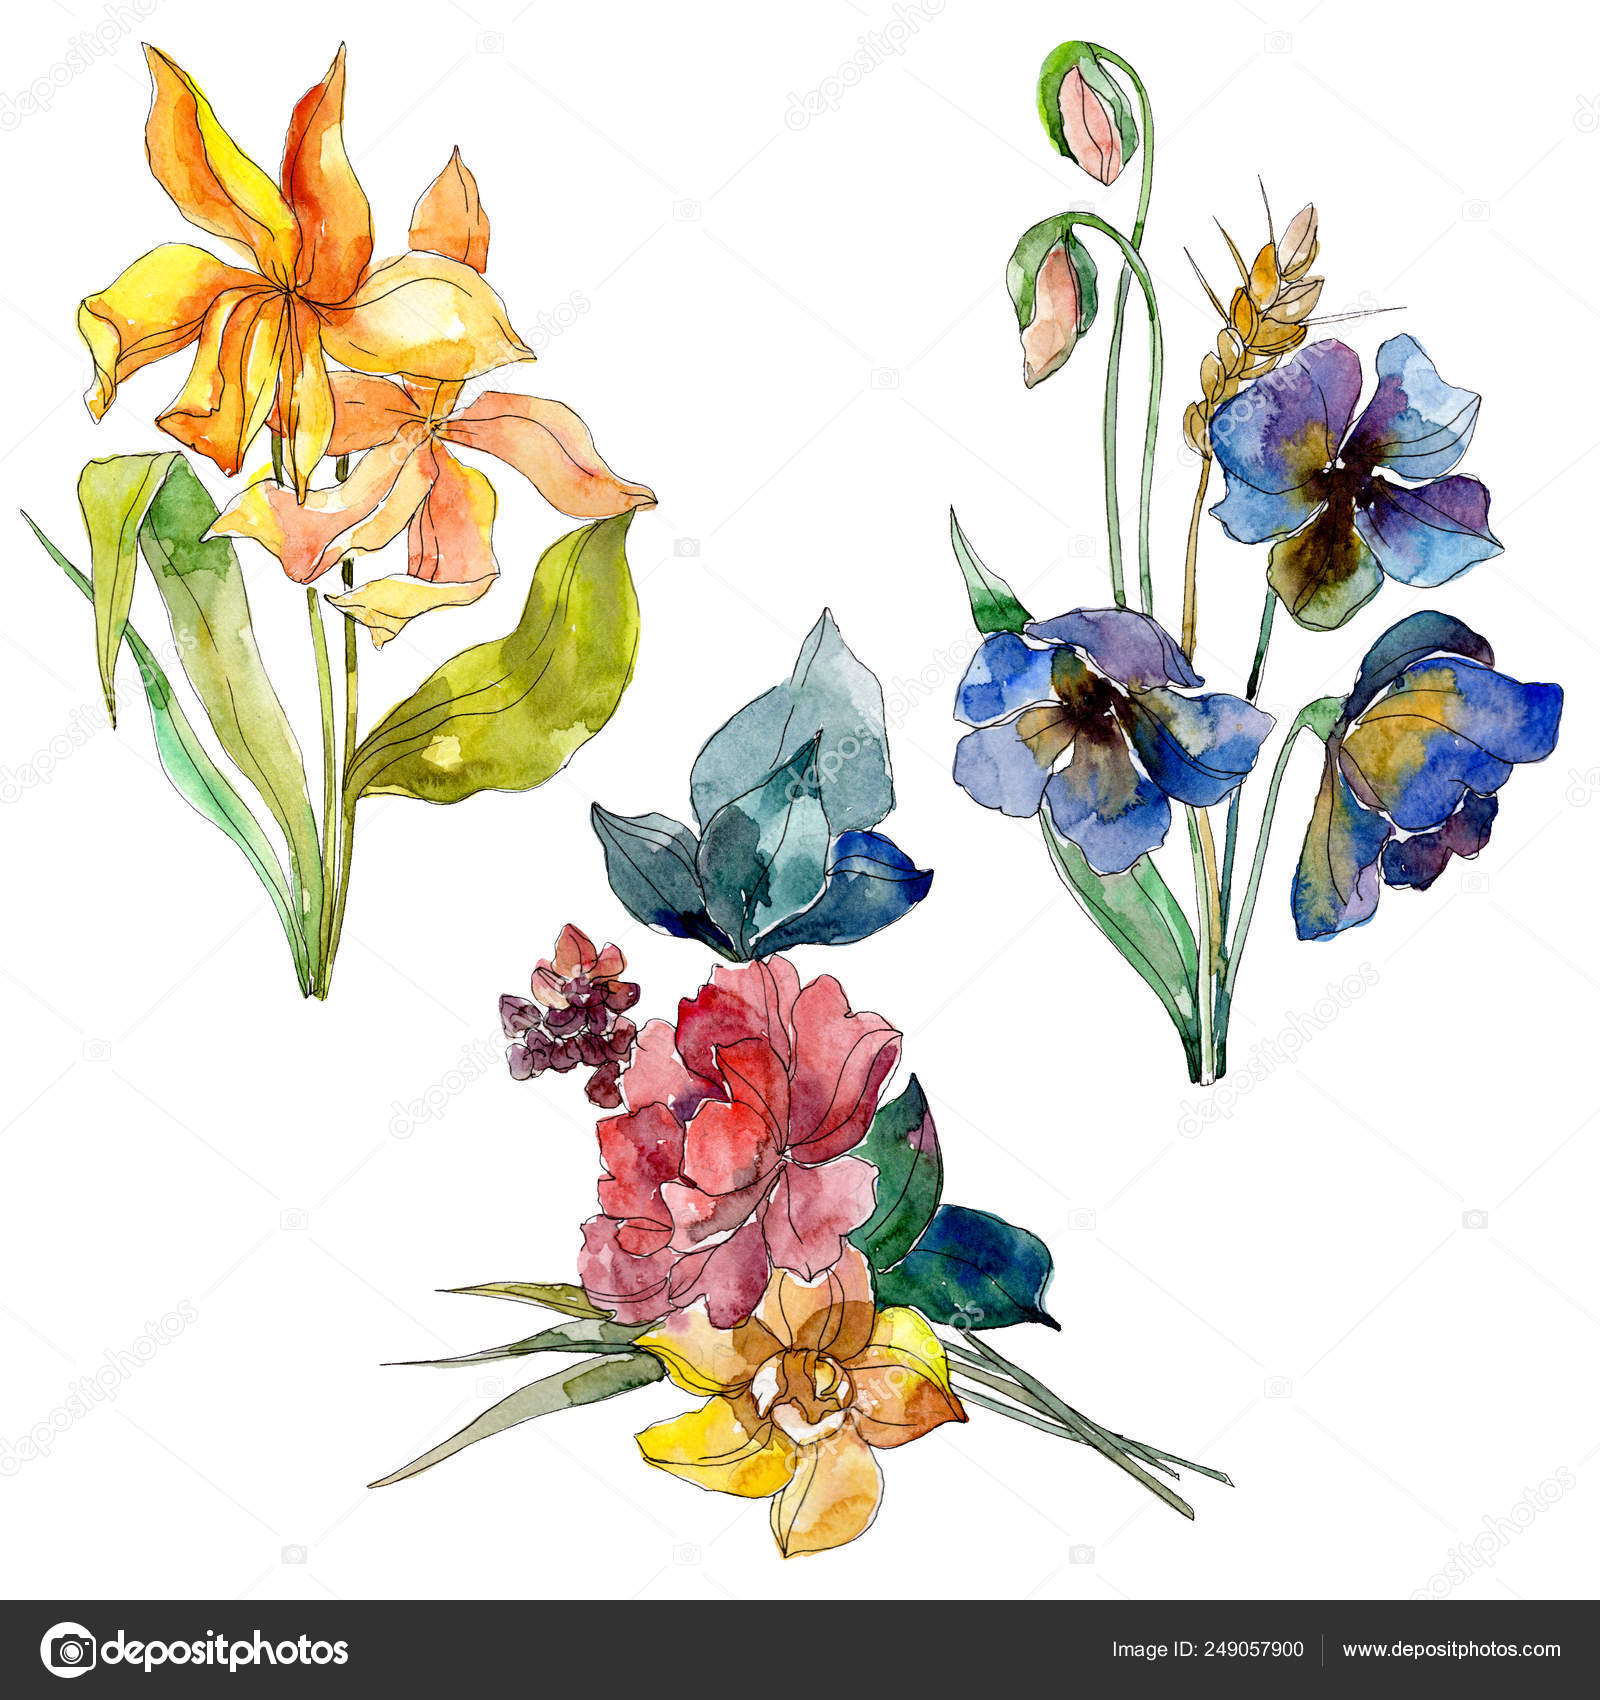 Wildflower Bouquet Floral Botanical Flowers Watercolor Background Set Isolated Wildflower Illustration Element Stock Photo Image By C Mystocks 249057900